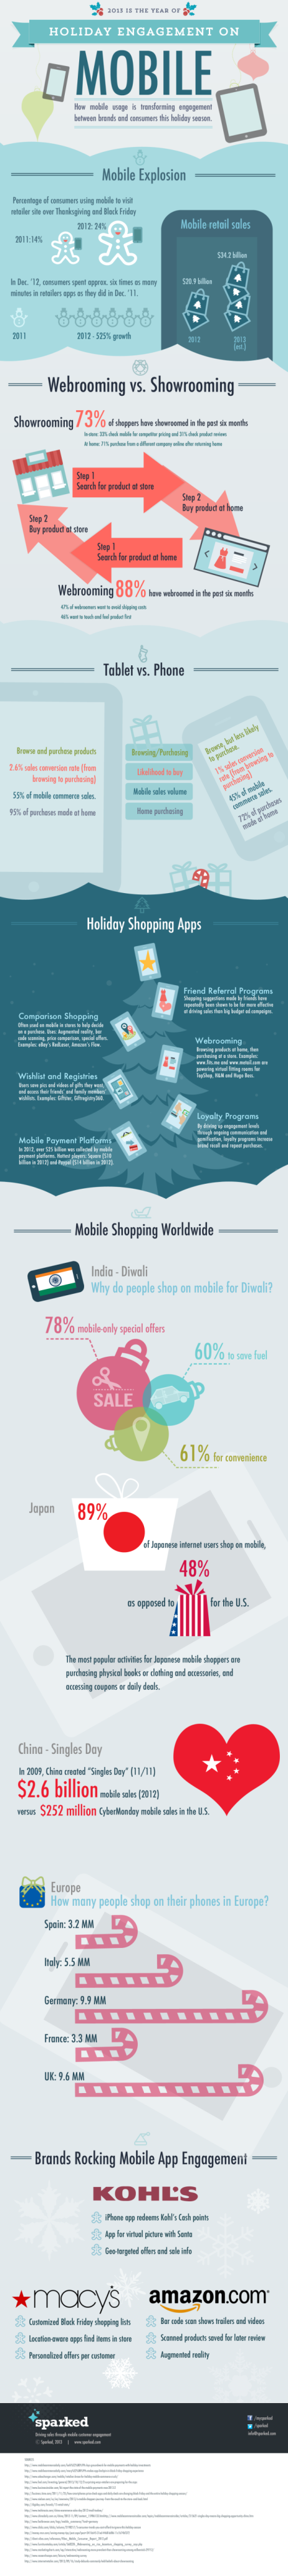 2013-holiday-mobile-infographic-640x5734